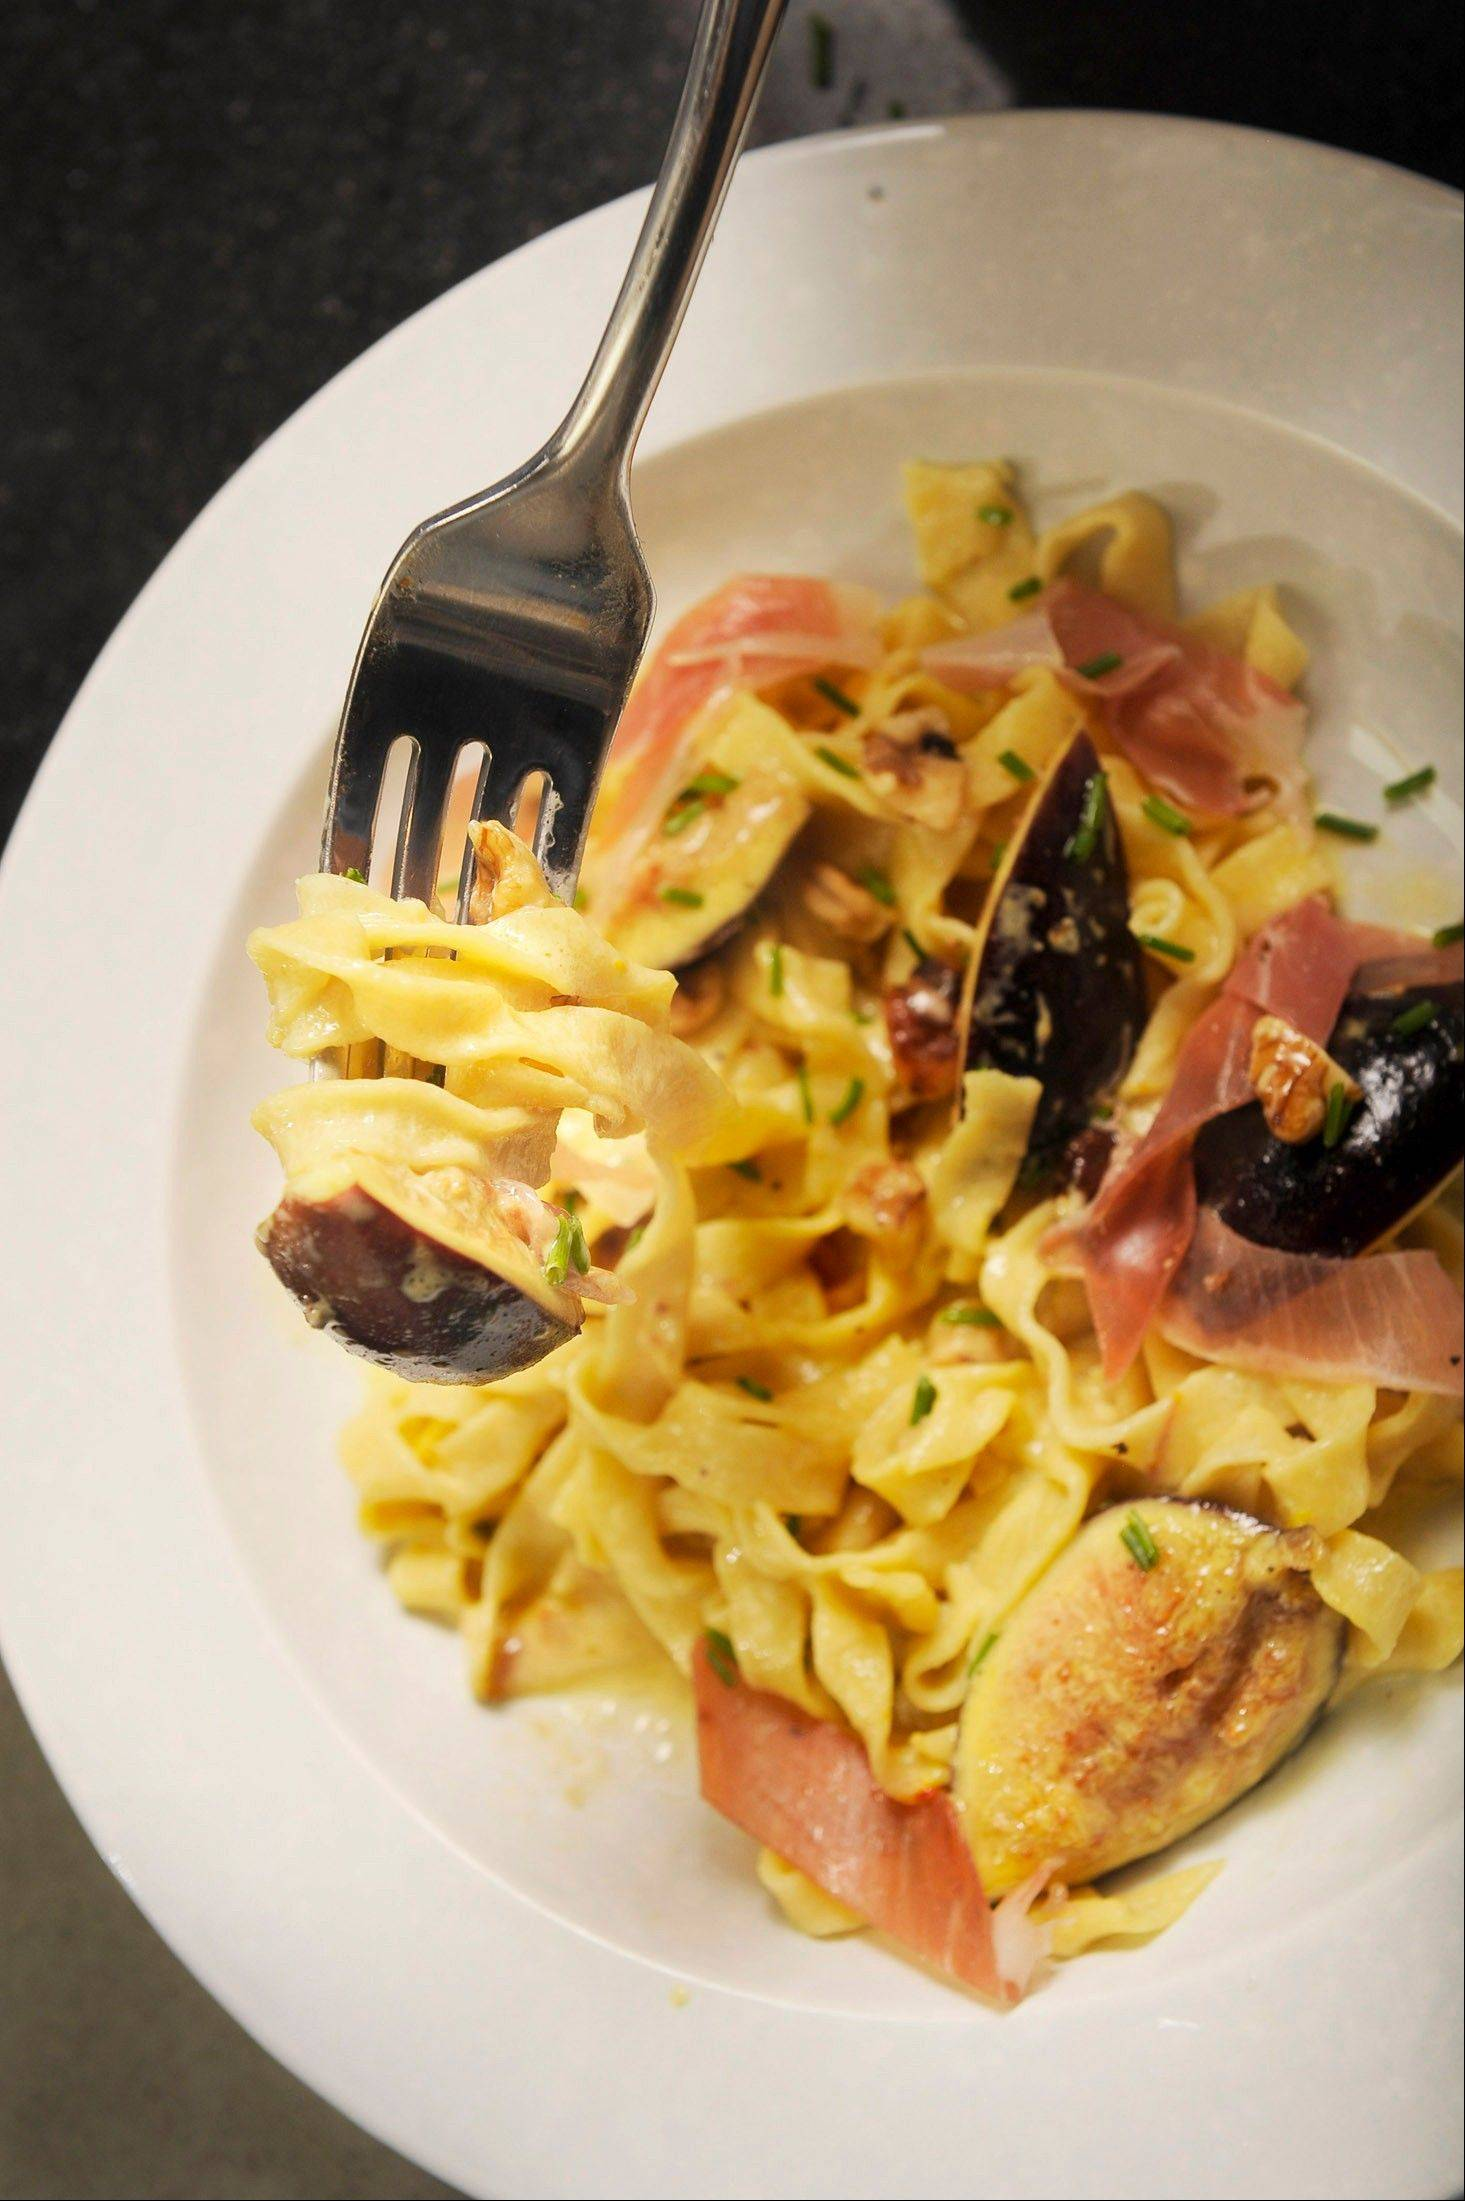 Saffron Fettuccine With Figs and Cambozola Sauce